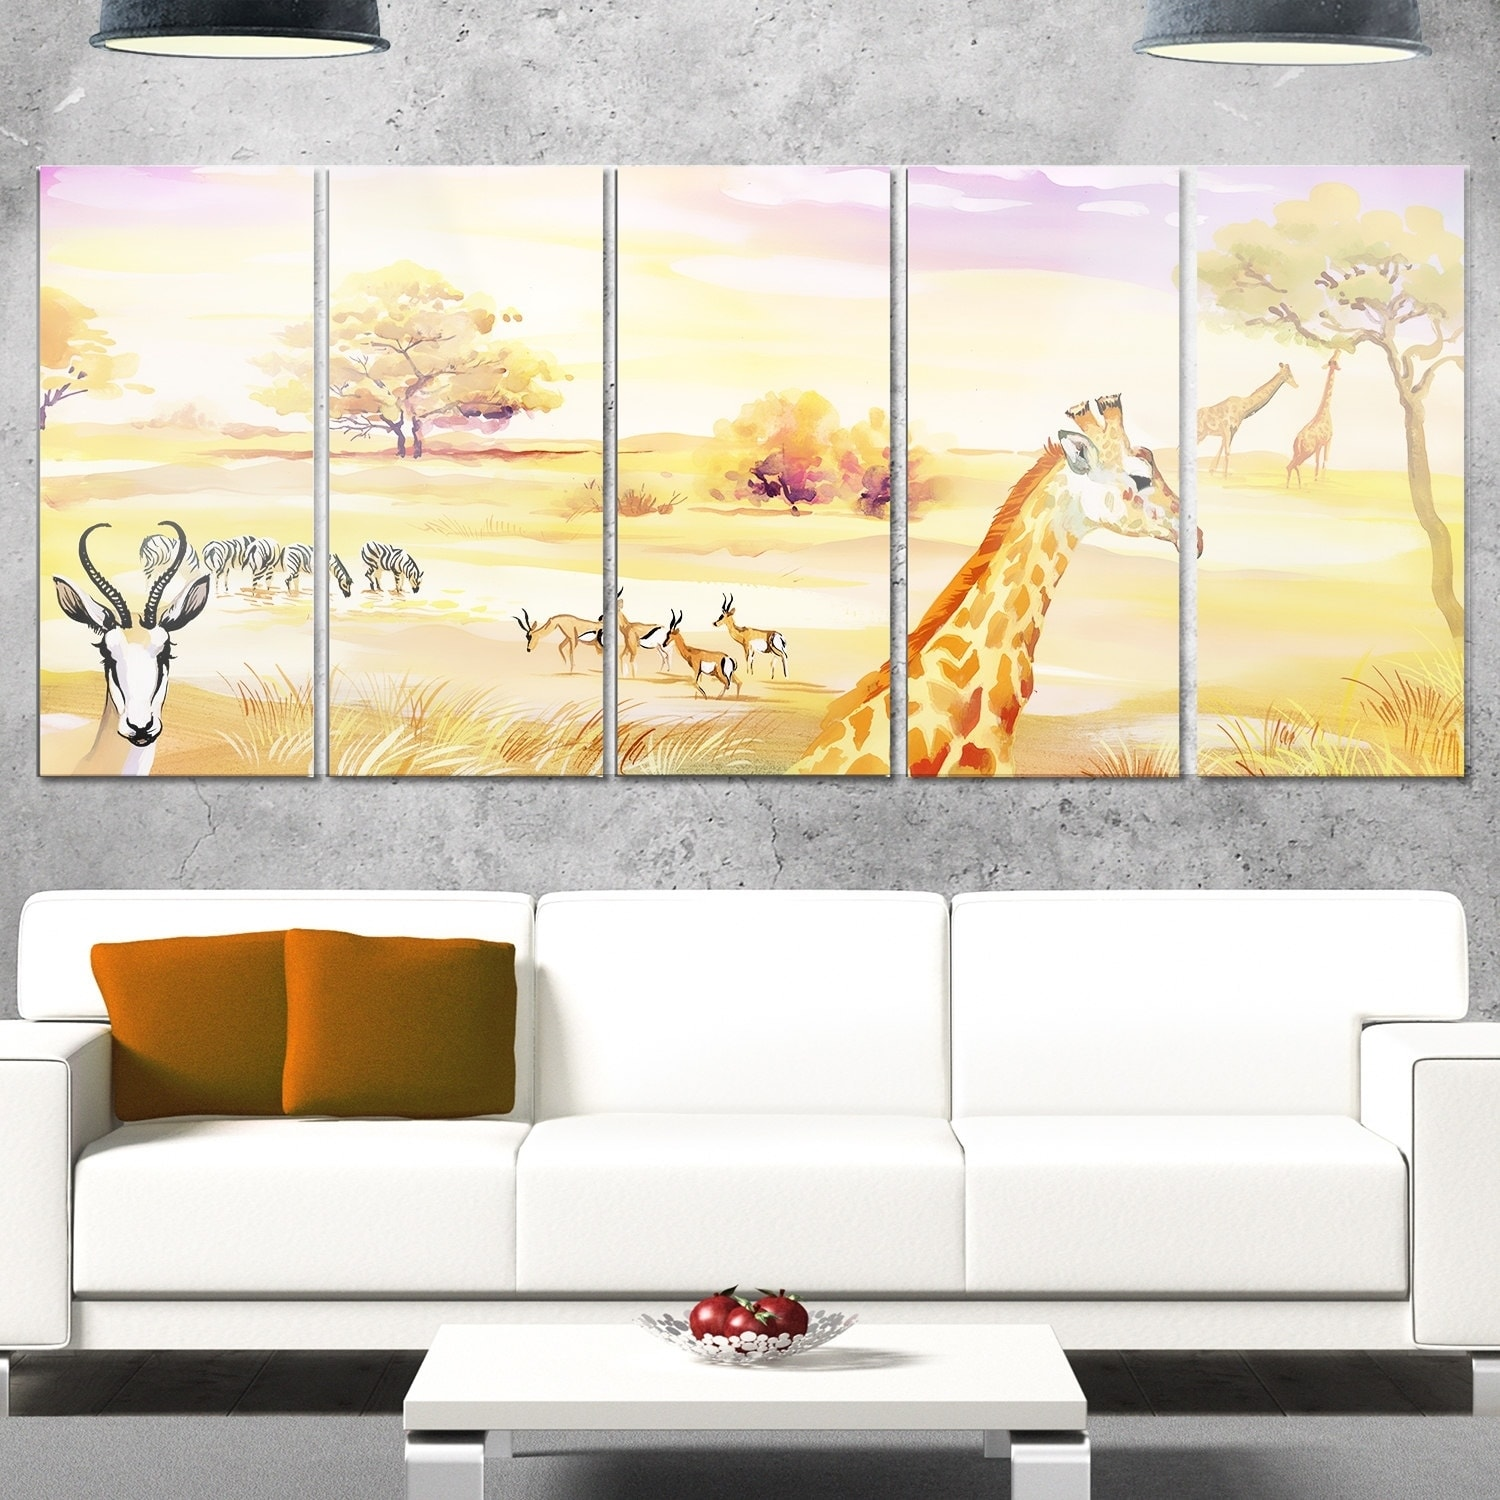 Outstanding Frog Nursery Wall Decor Inspiration - The Wall Art ...